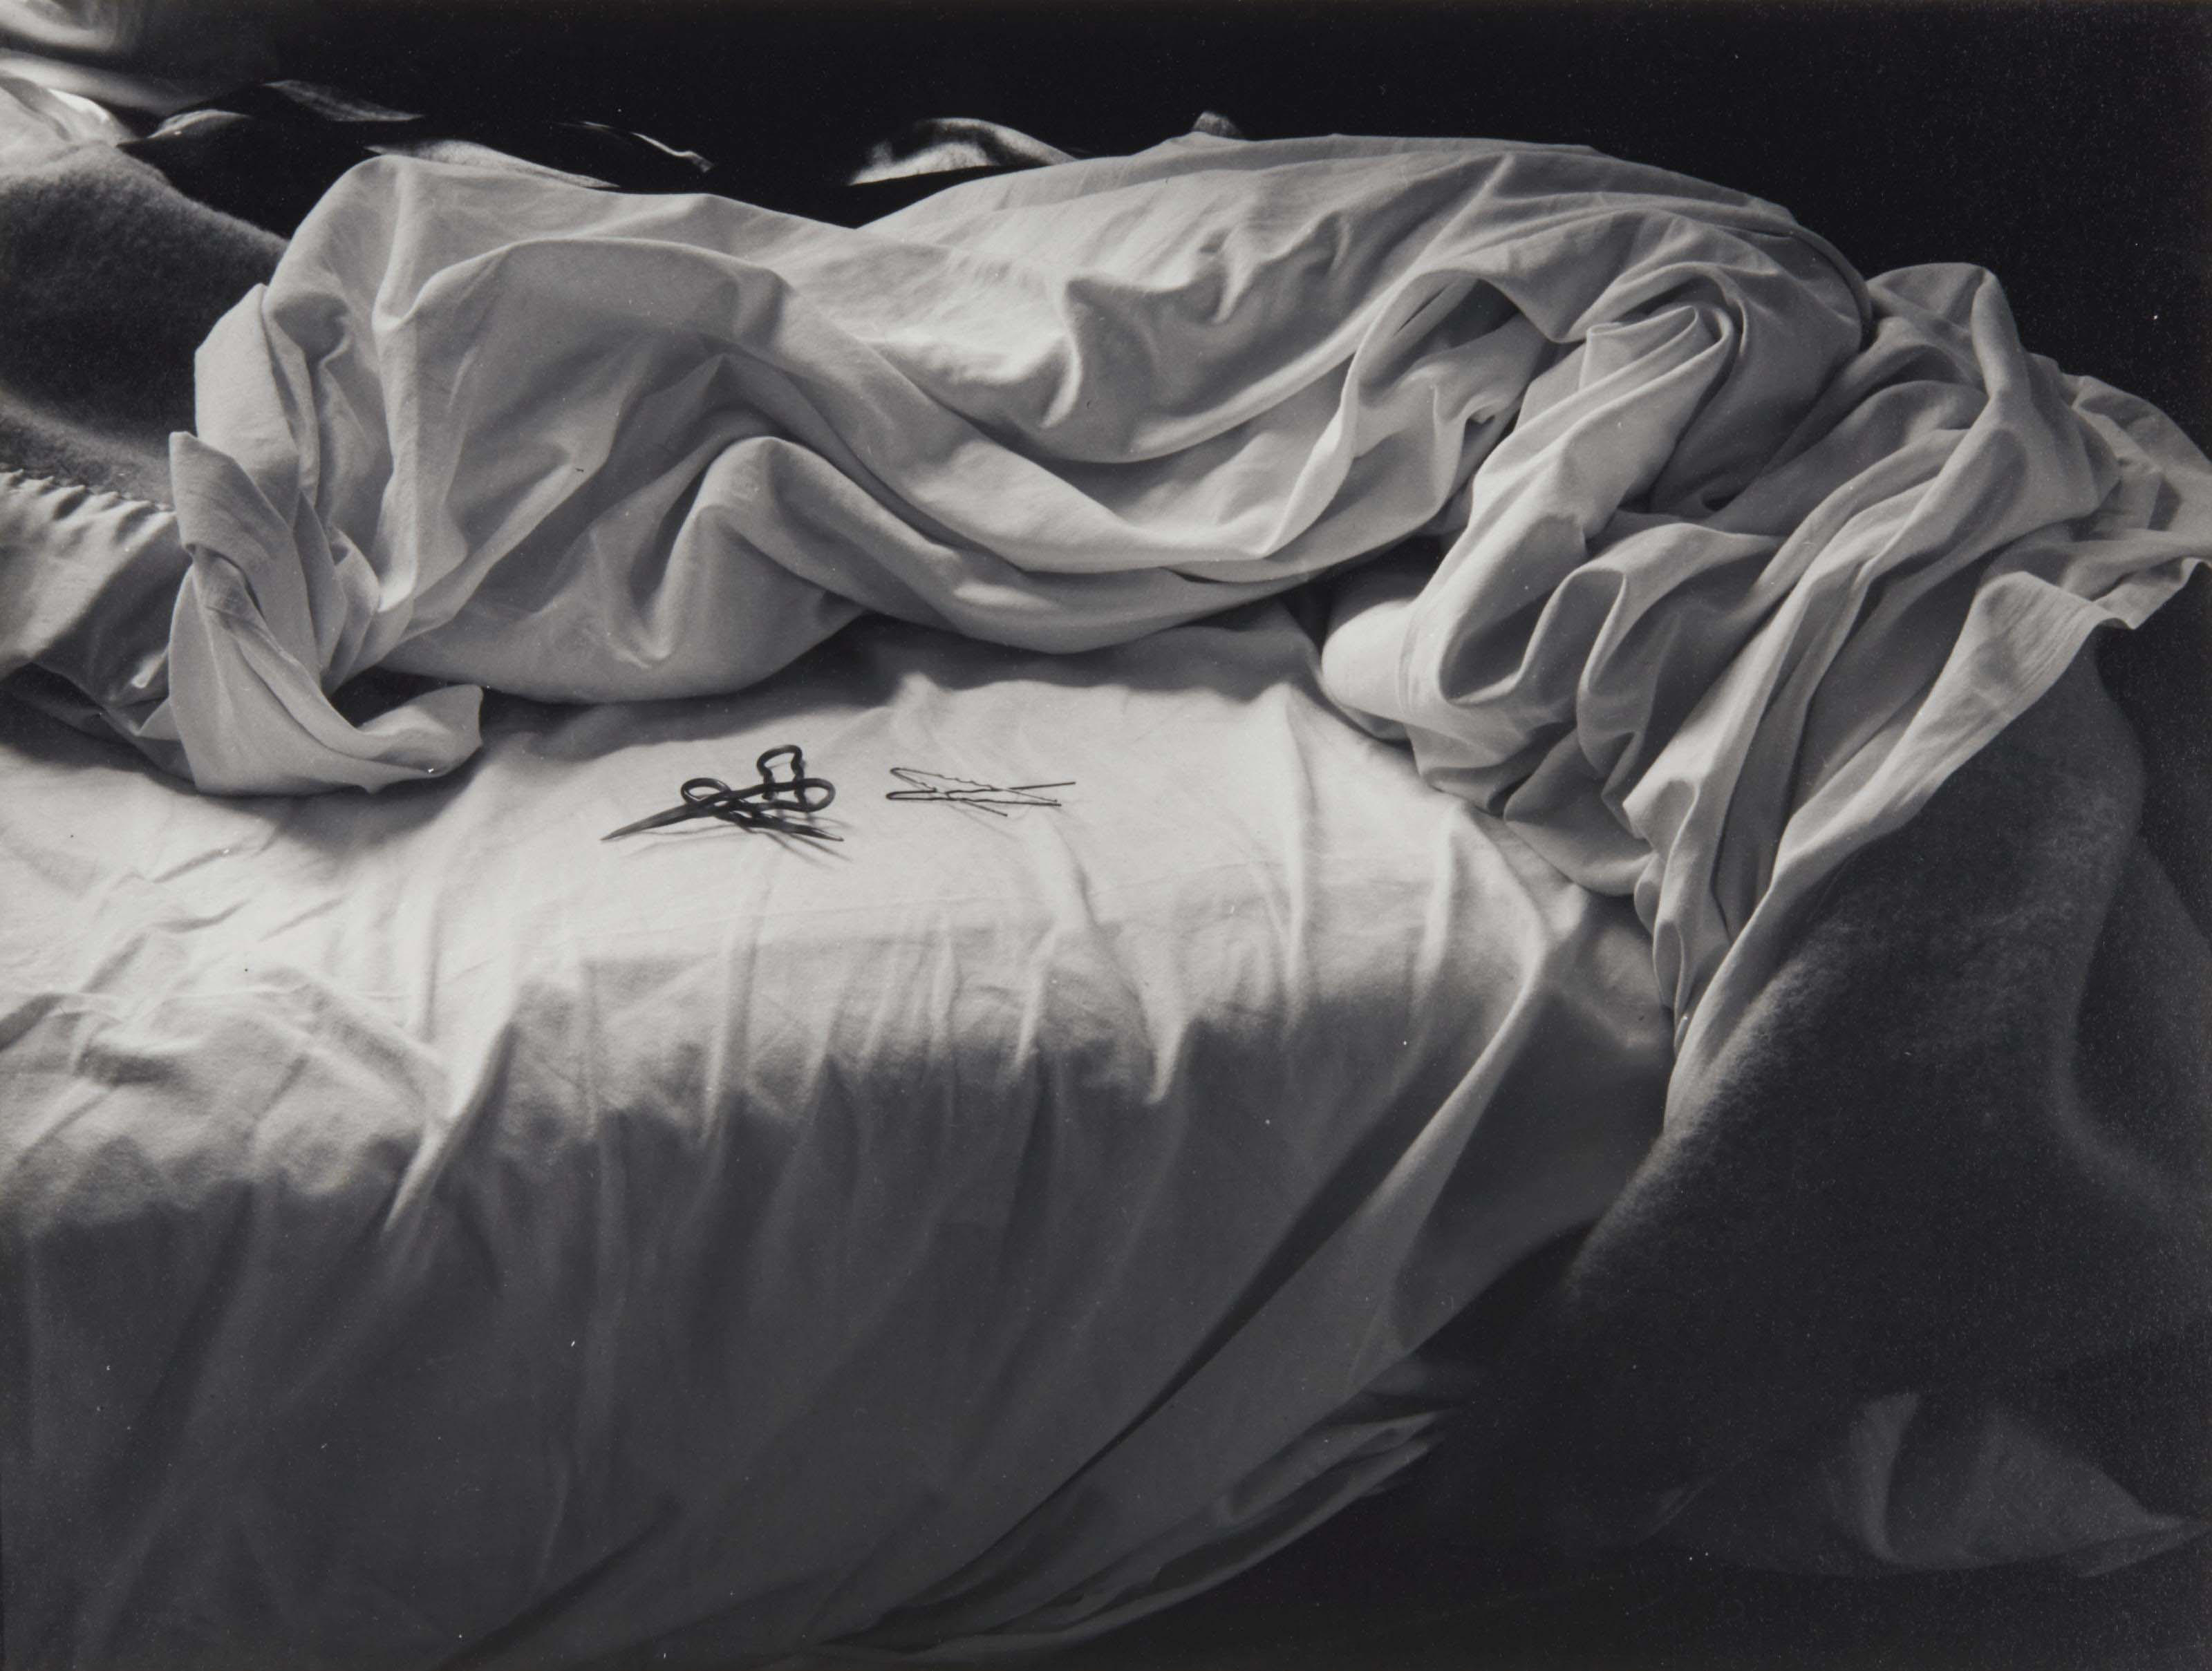 Unmade bed, 1957